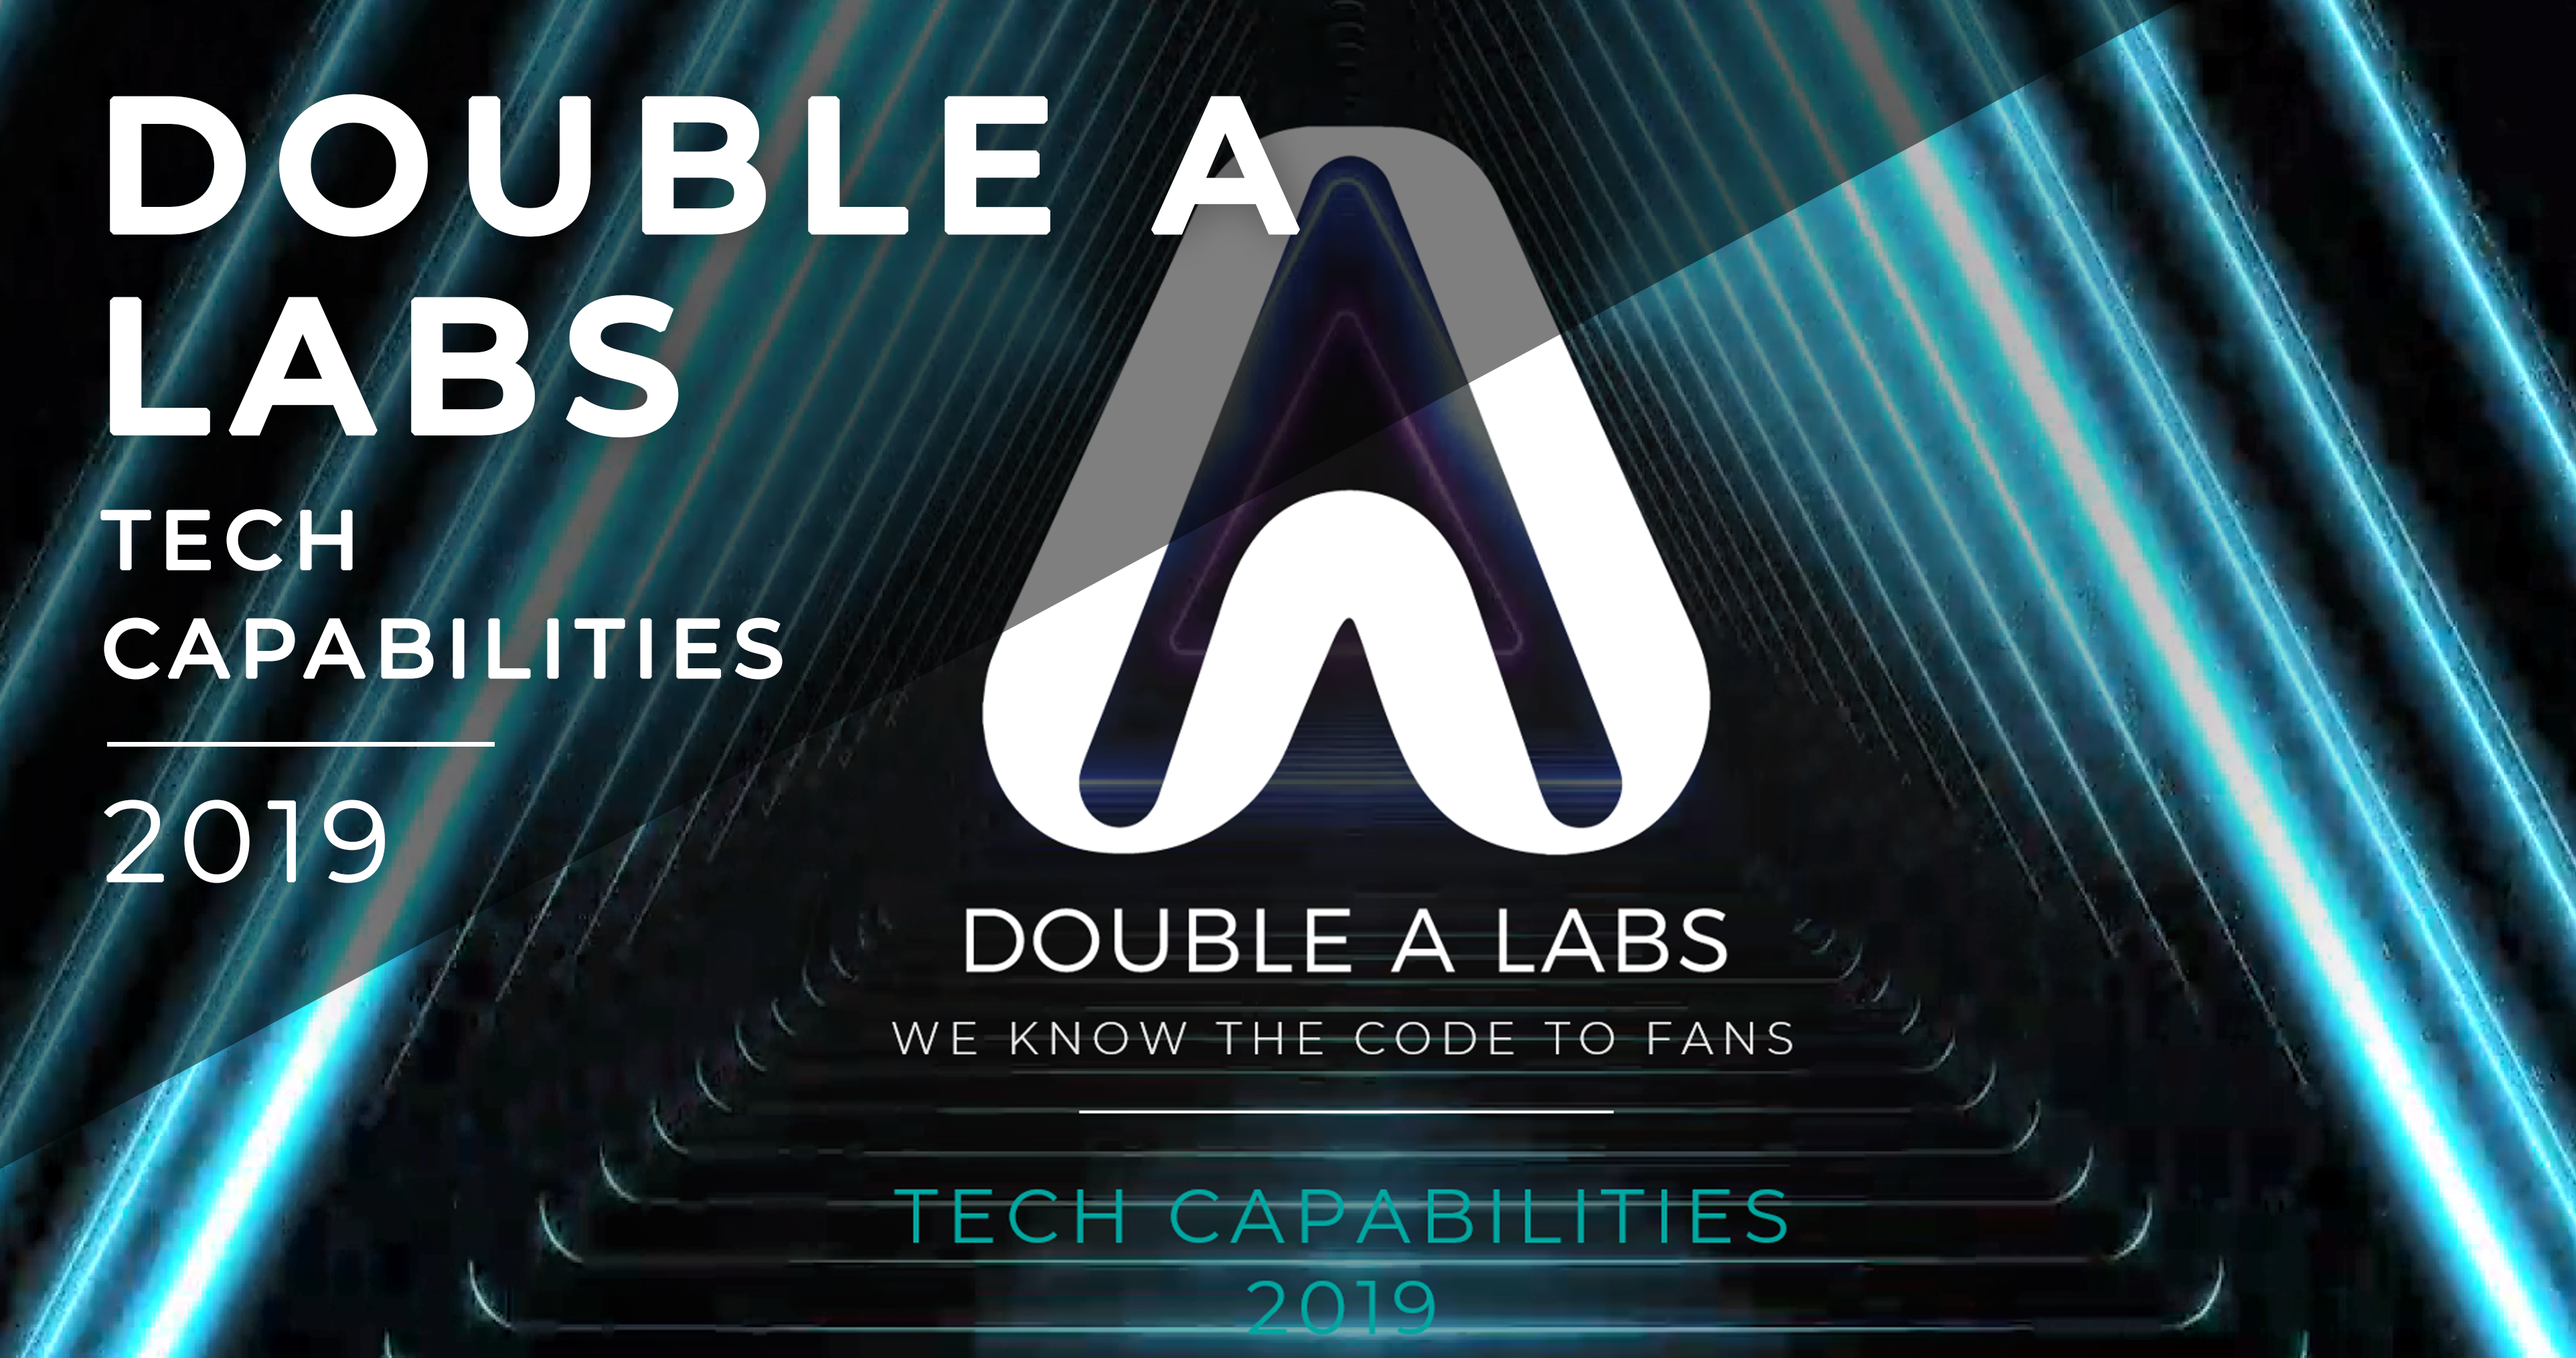 Double A Labs Tech Capabilities